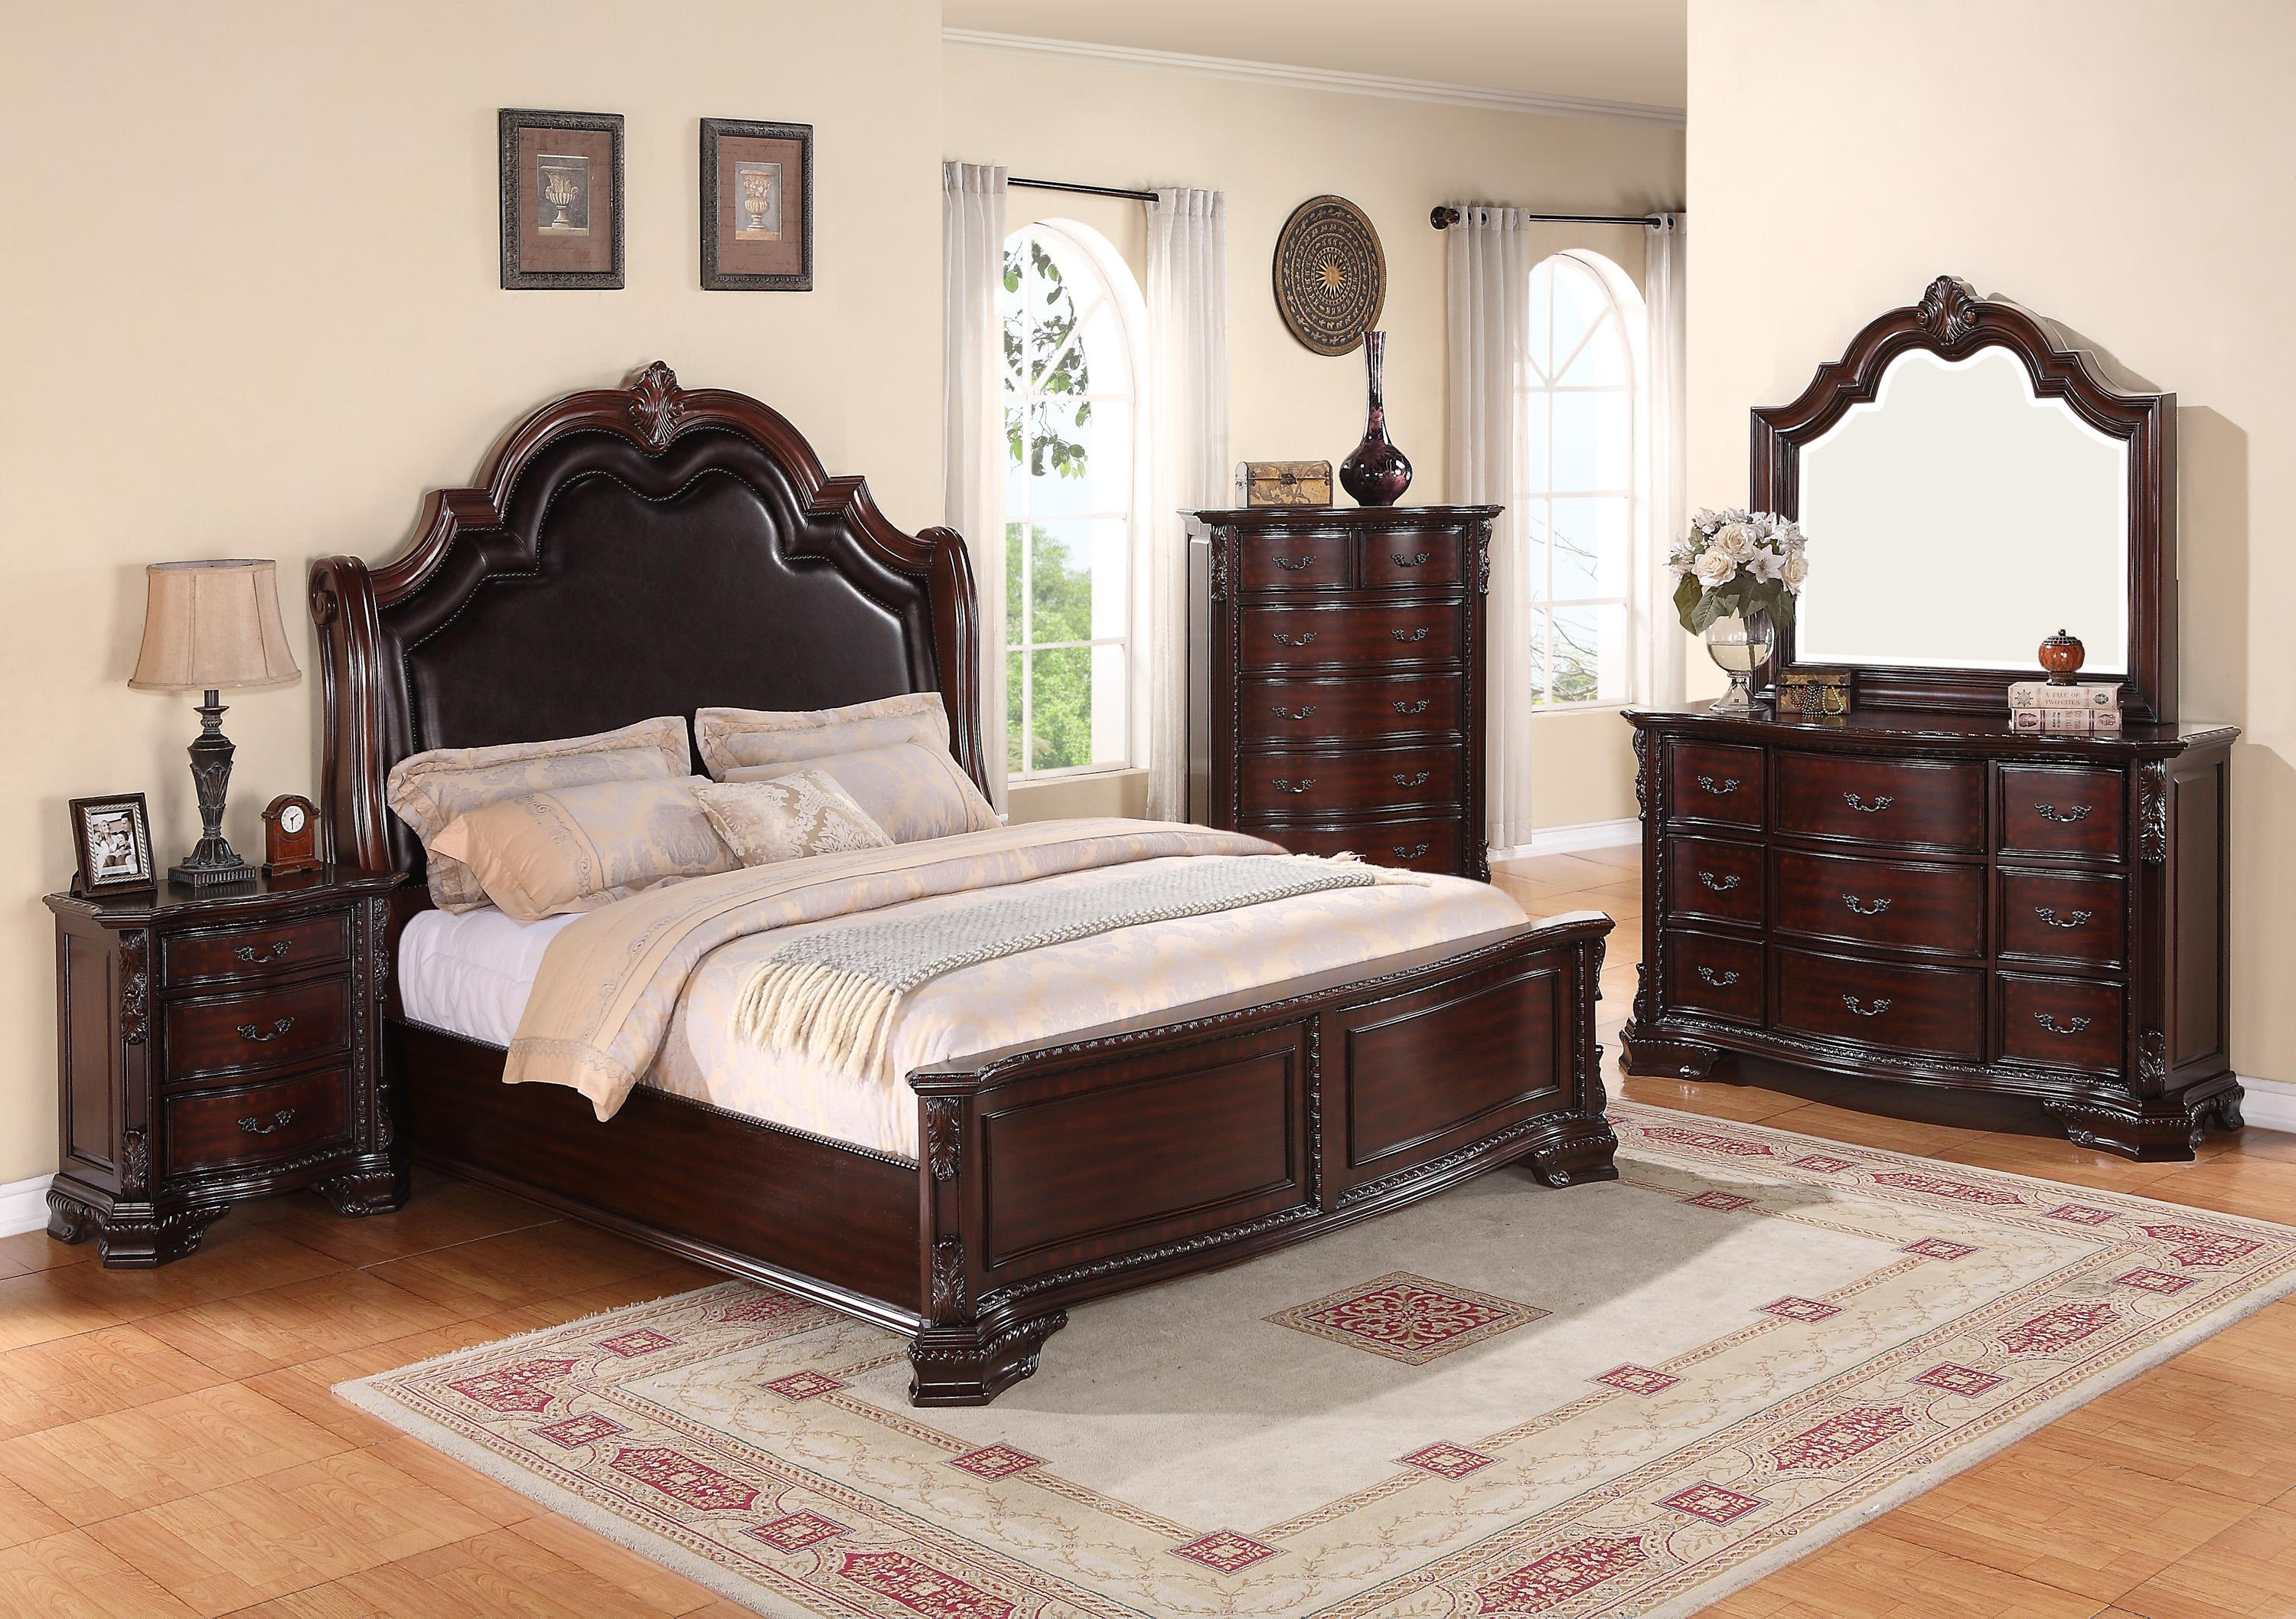 Sheffield B1100 By Crown Mark Royal Furniture Crown Mark